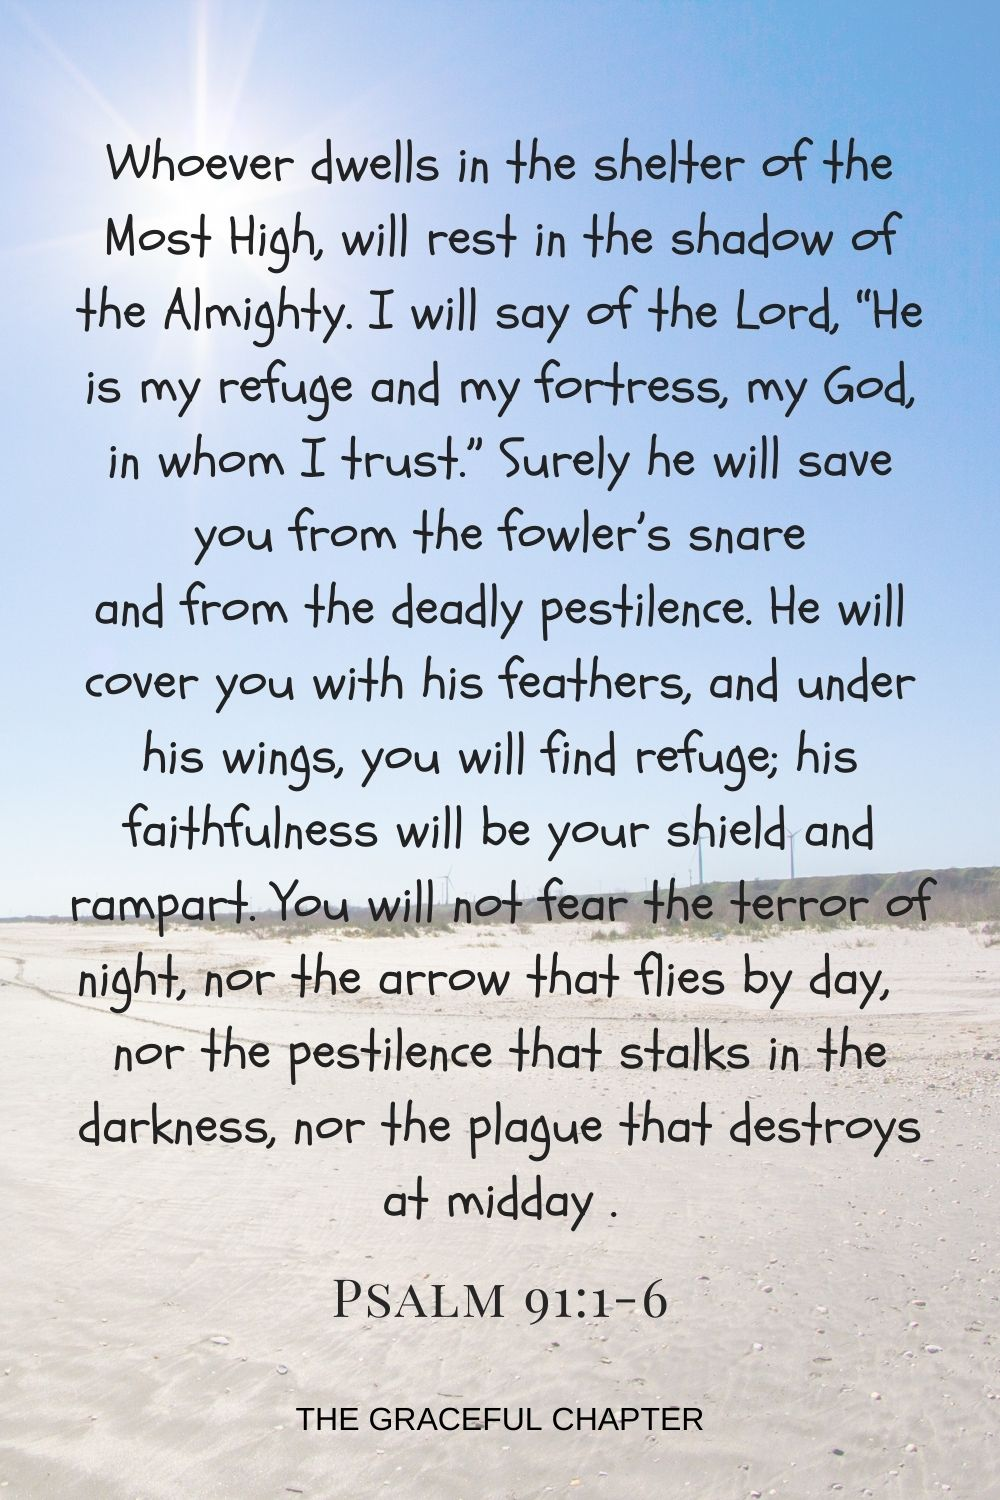 """Whoever dwells in the shelter of the Most High will rest in the shadow of the Almighty. I will say of the Lord, """"He is my refuge and my fortress,my God, in whom I trust."""" Surely he will save you from the fowler's snare and from the deadly pestilence.He will cover you with his feathers, and under his wings, you will find refuge; his faithfulness will be your shield and rampart. You will not fear the terror of night, nor the arrow that flies by day, nor the pestilence that stalks in the darkness,nor the plague that destroys at midday    Psalm 91:1-6"""